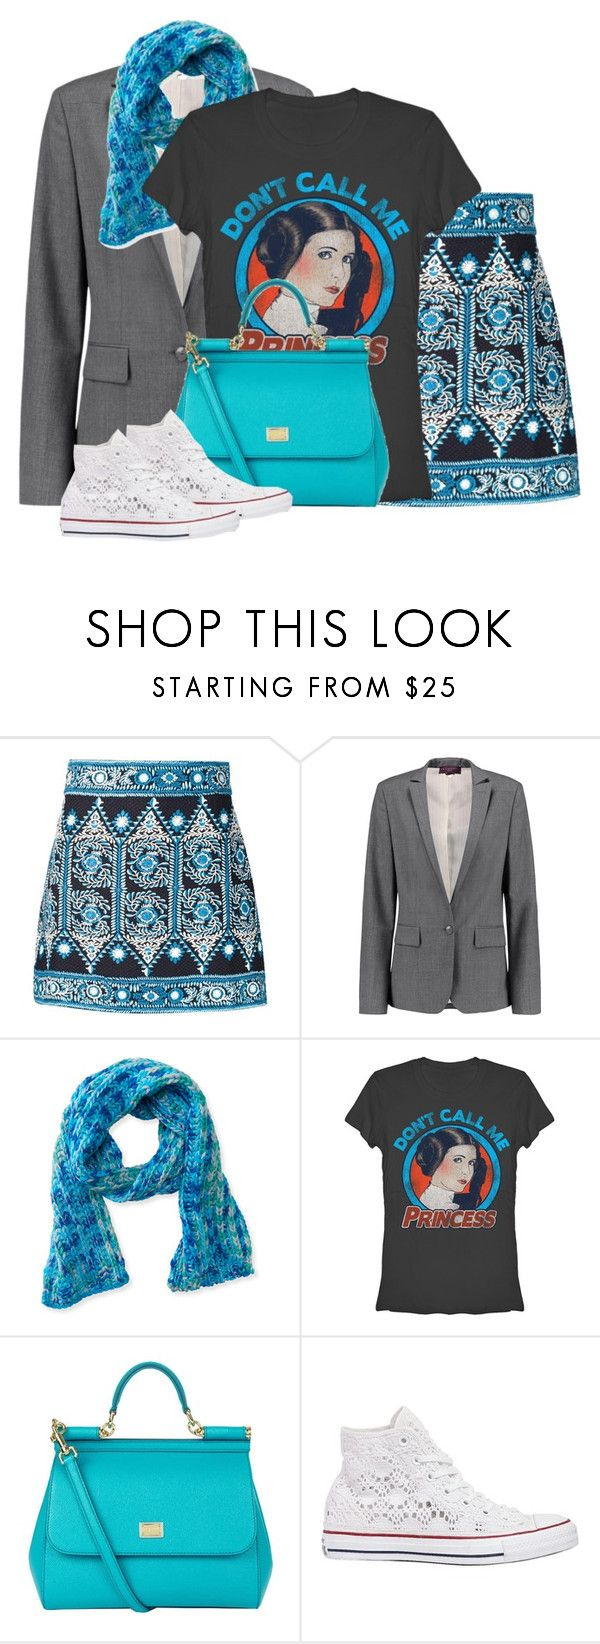 """""""Your worshipfulness"""" by bella8 ❤ liked on Polyvore featuring Sea, New York, STELLA McCARTNEY, Aéropostale, Dolce&Gabbana and Converse"""